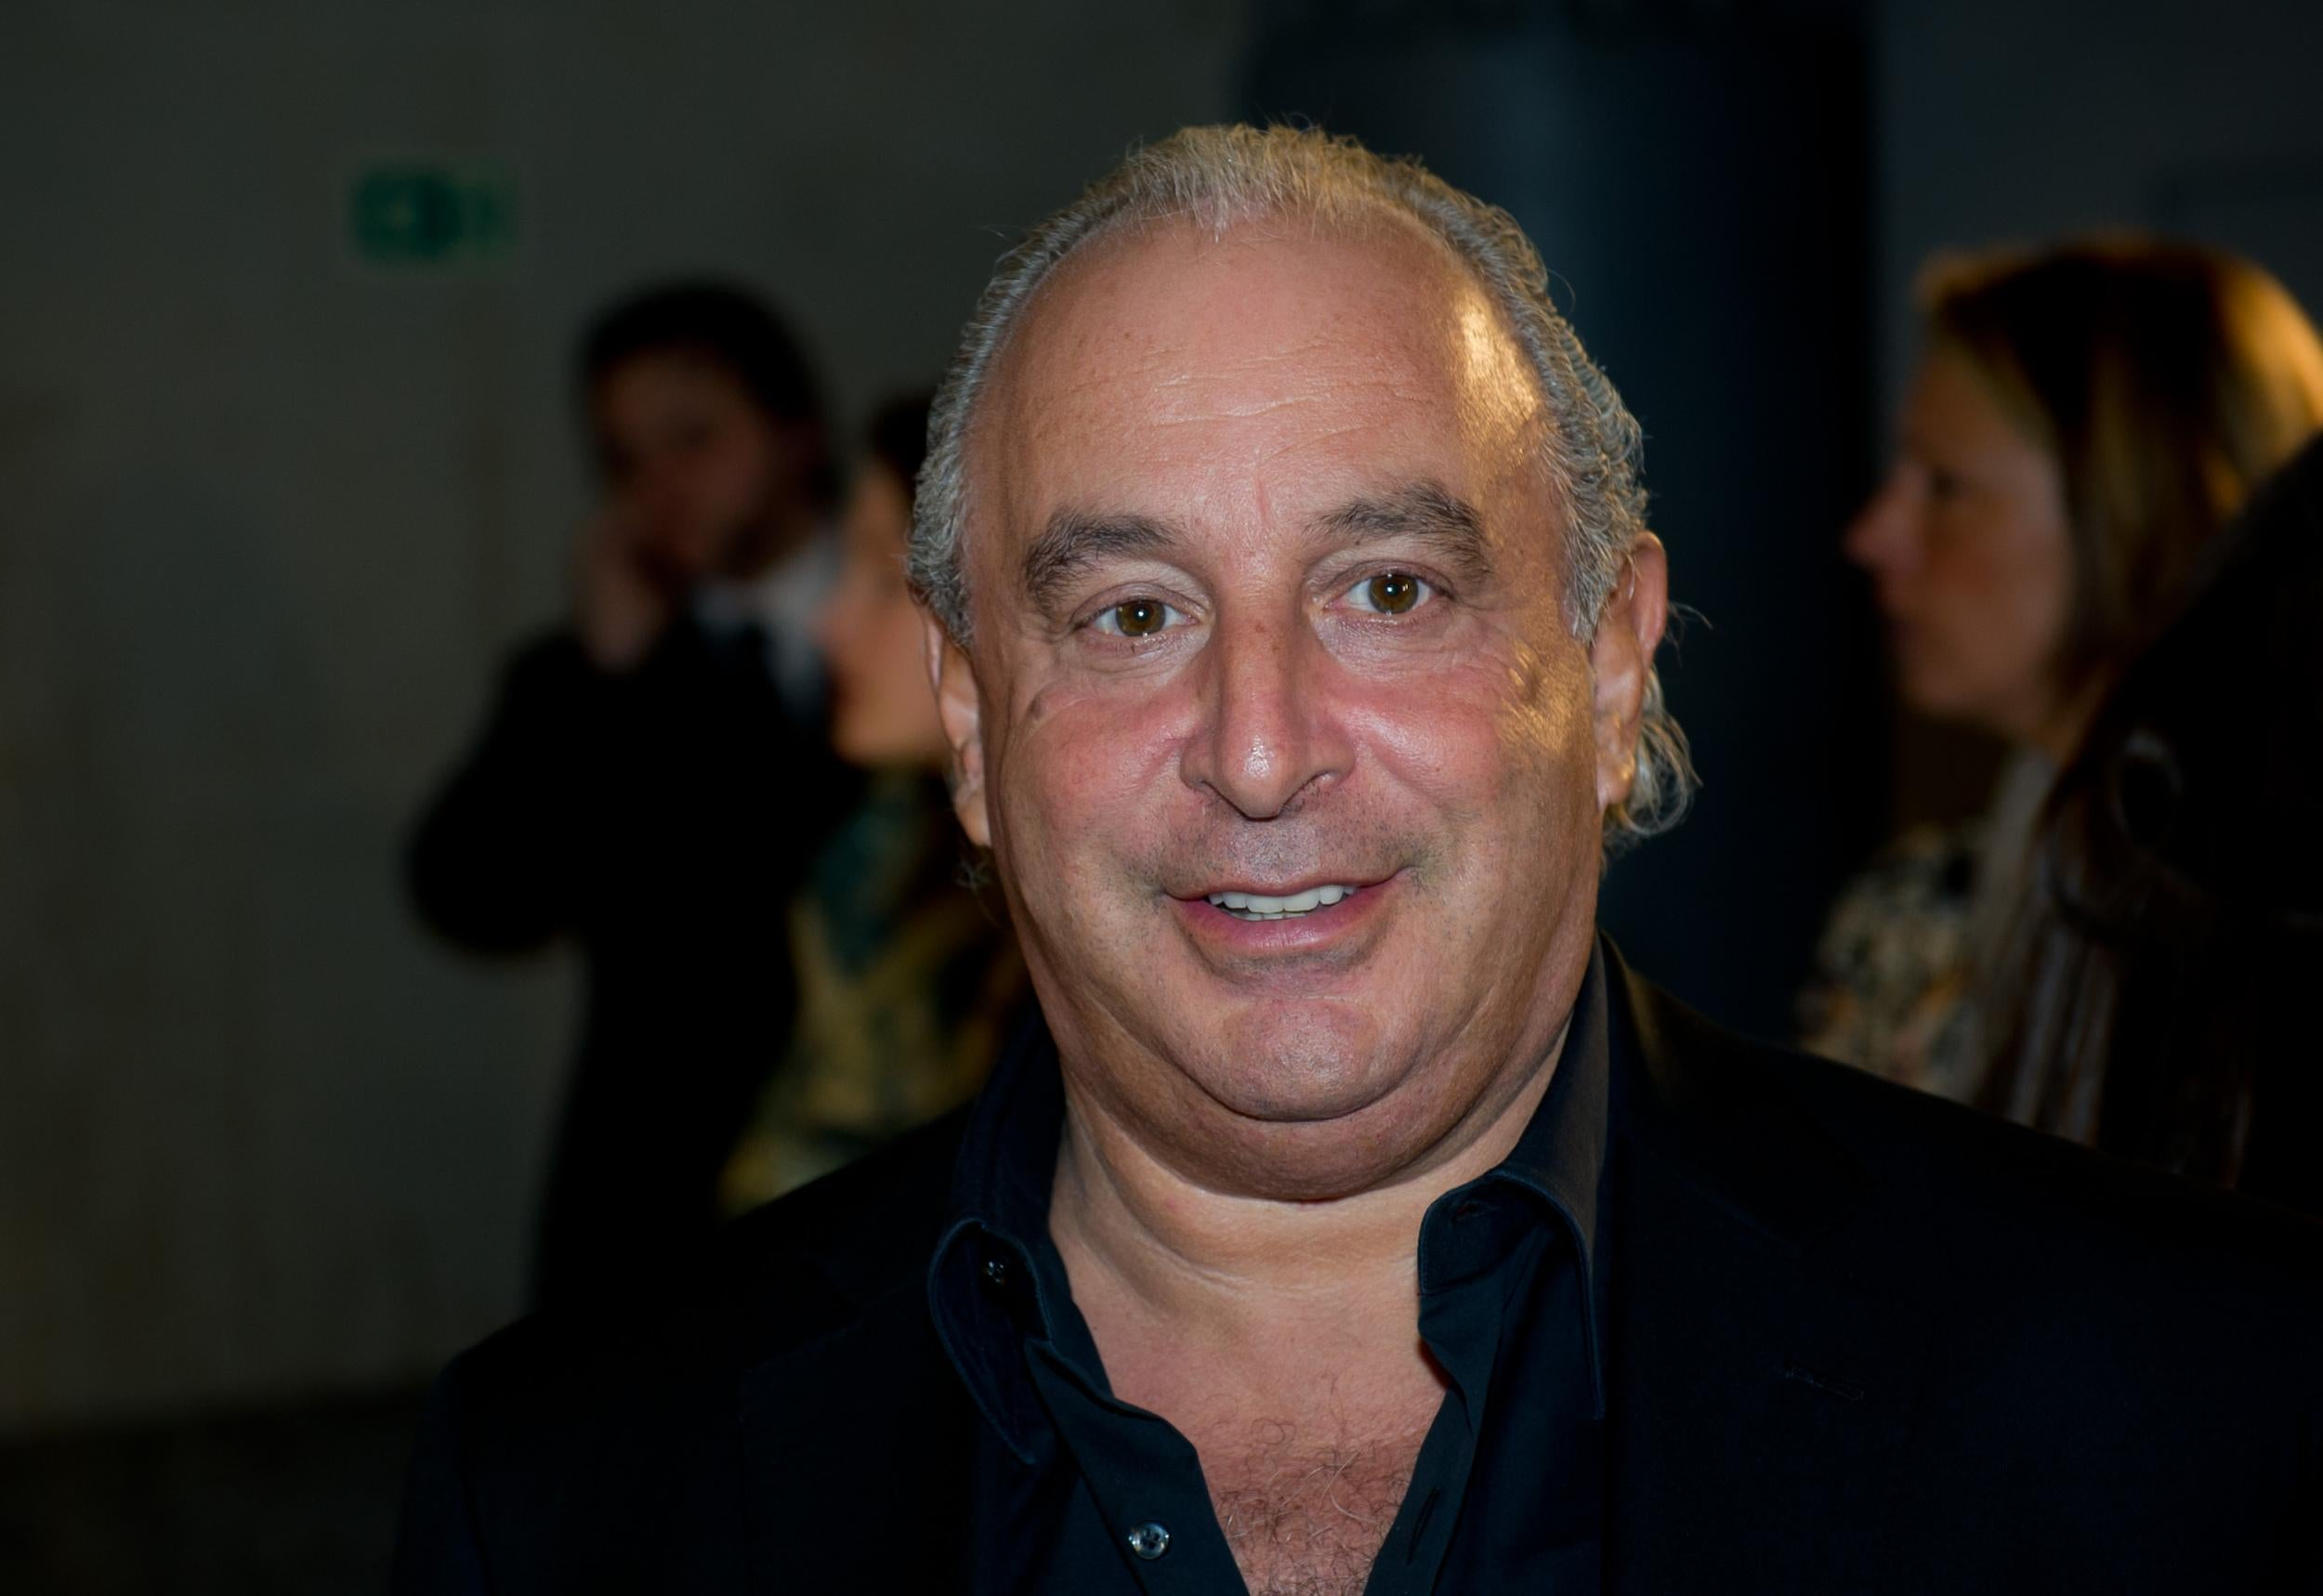 Philip Green tracked down and confronted at luxury US health resort amid sexual harassment allegations